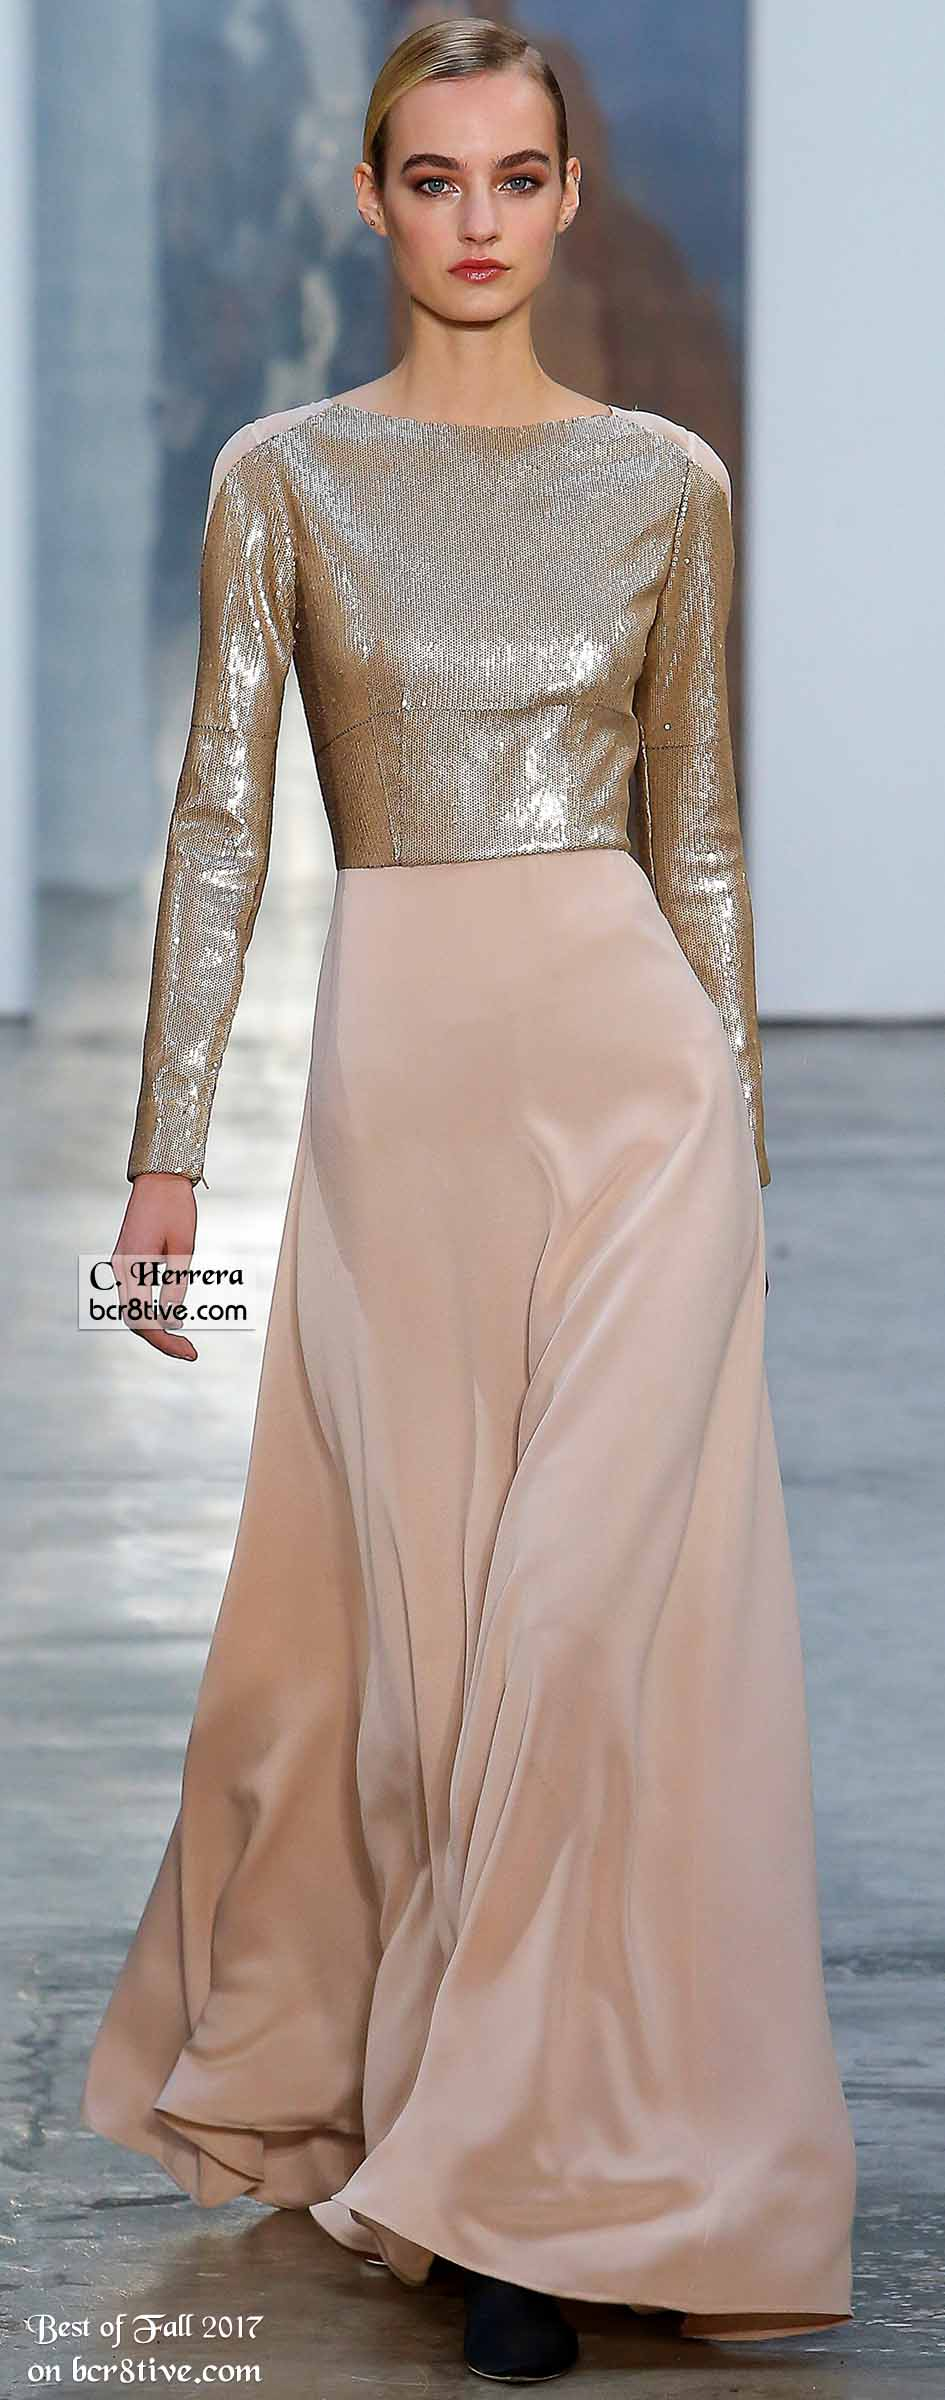 Carolina Herrera Fall 2017